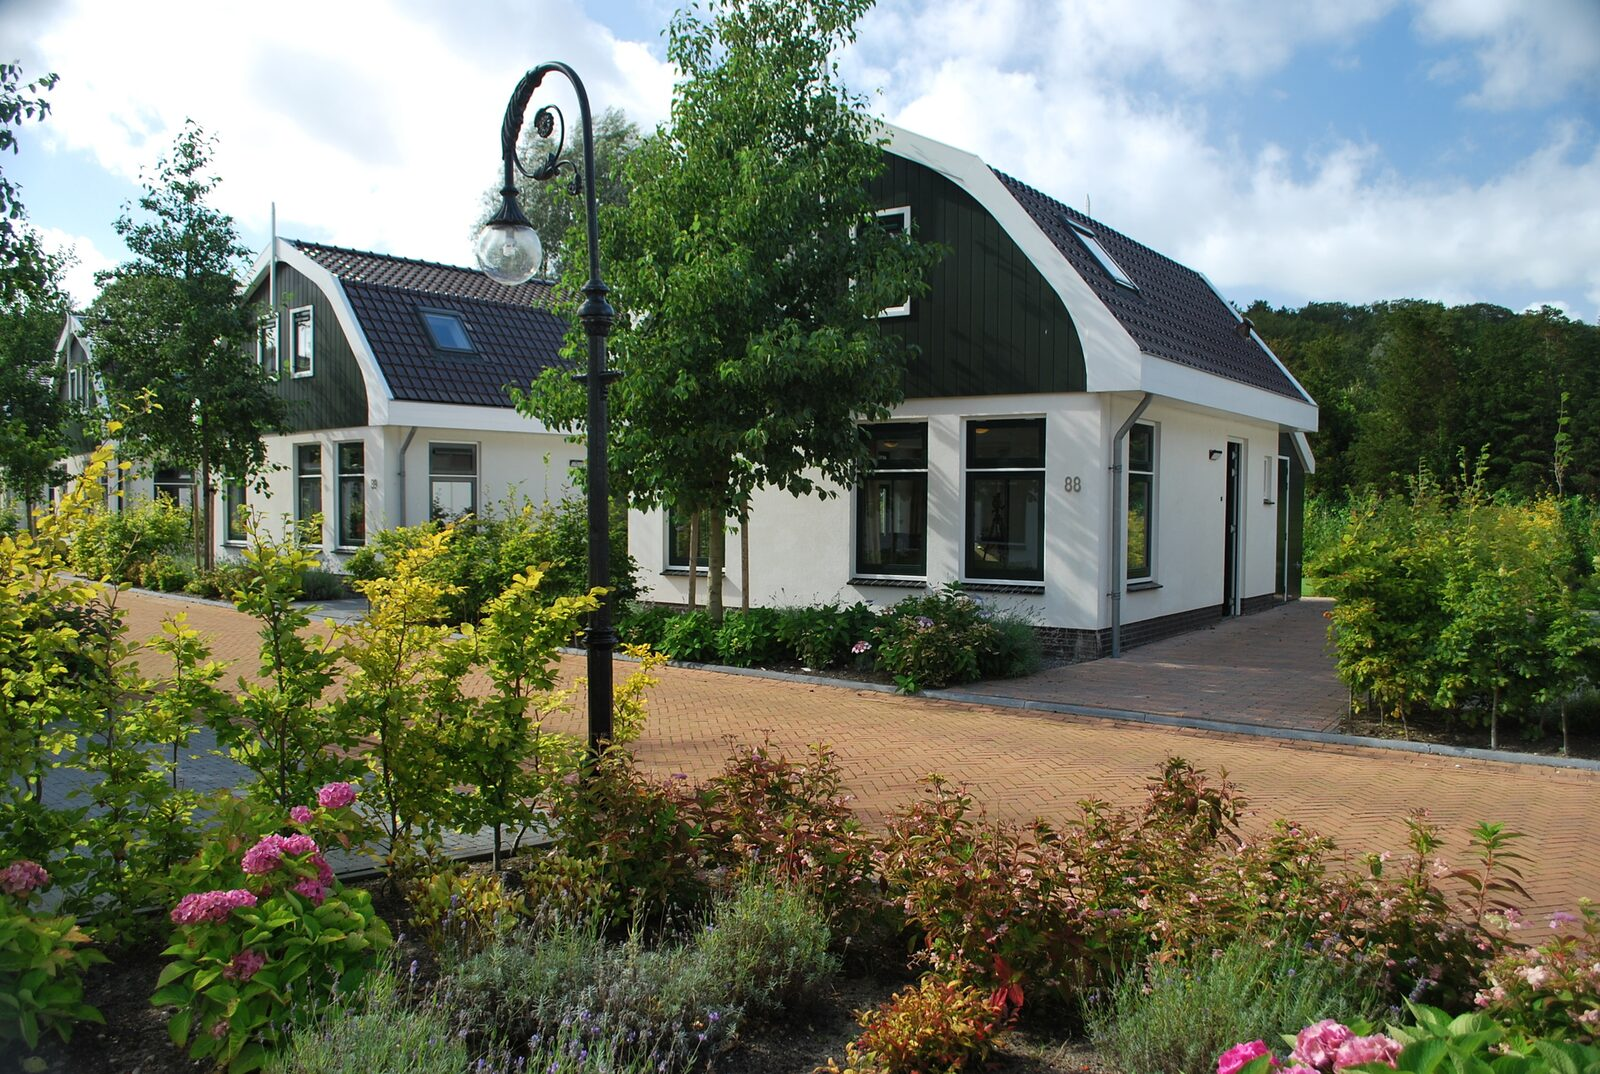 Koningshoeve Wellness 4 people